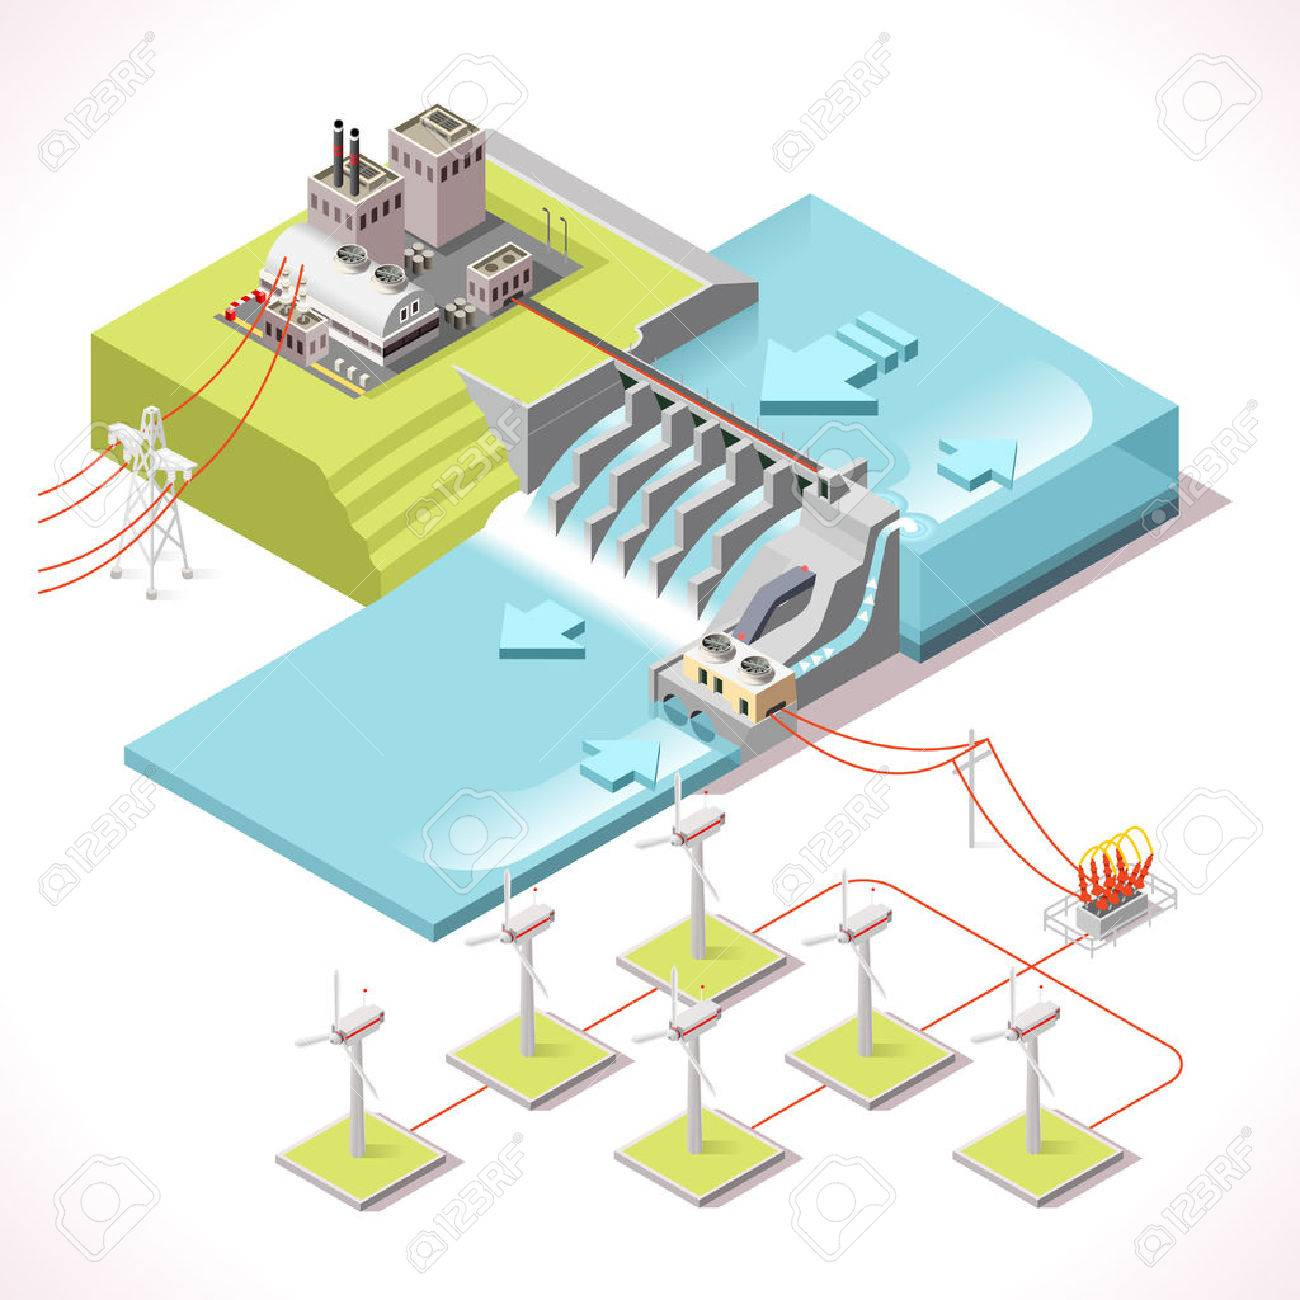 hight resolution of hybrid power systems hydroelectric plant and windmill factory isometric electric power station electricity grid and